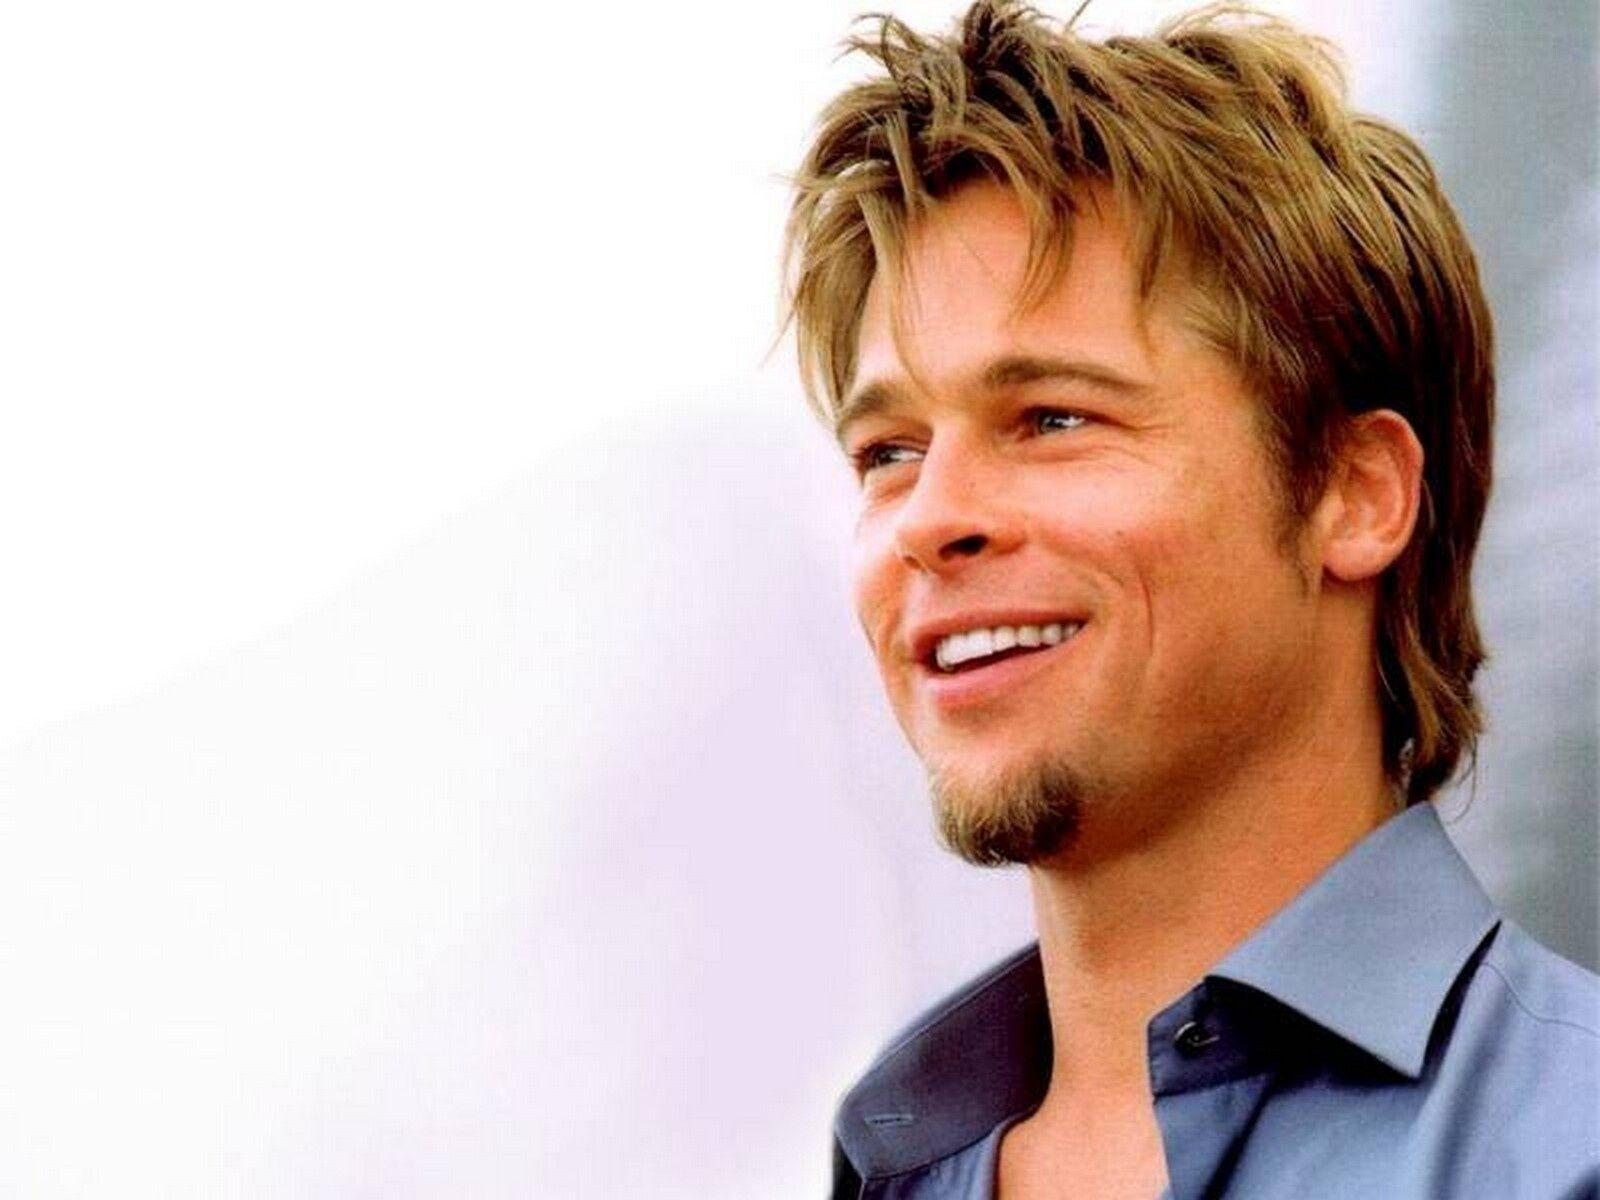 Brad Pitt Wallpapers for iPhone and Mac